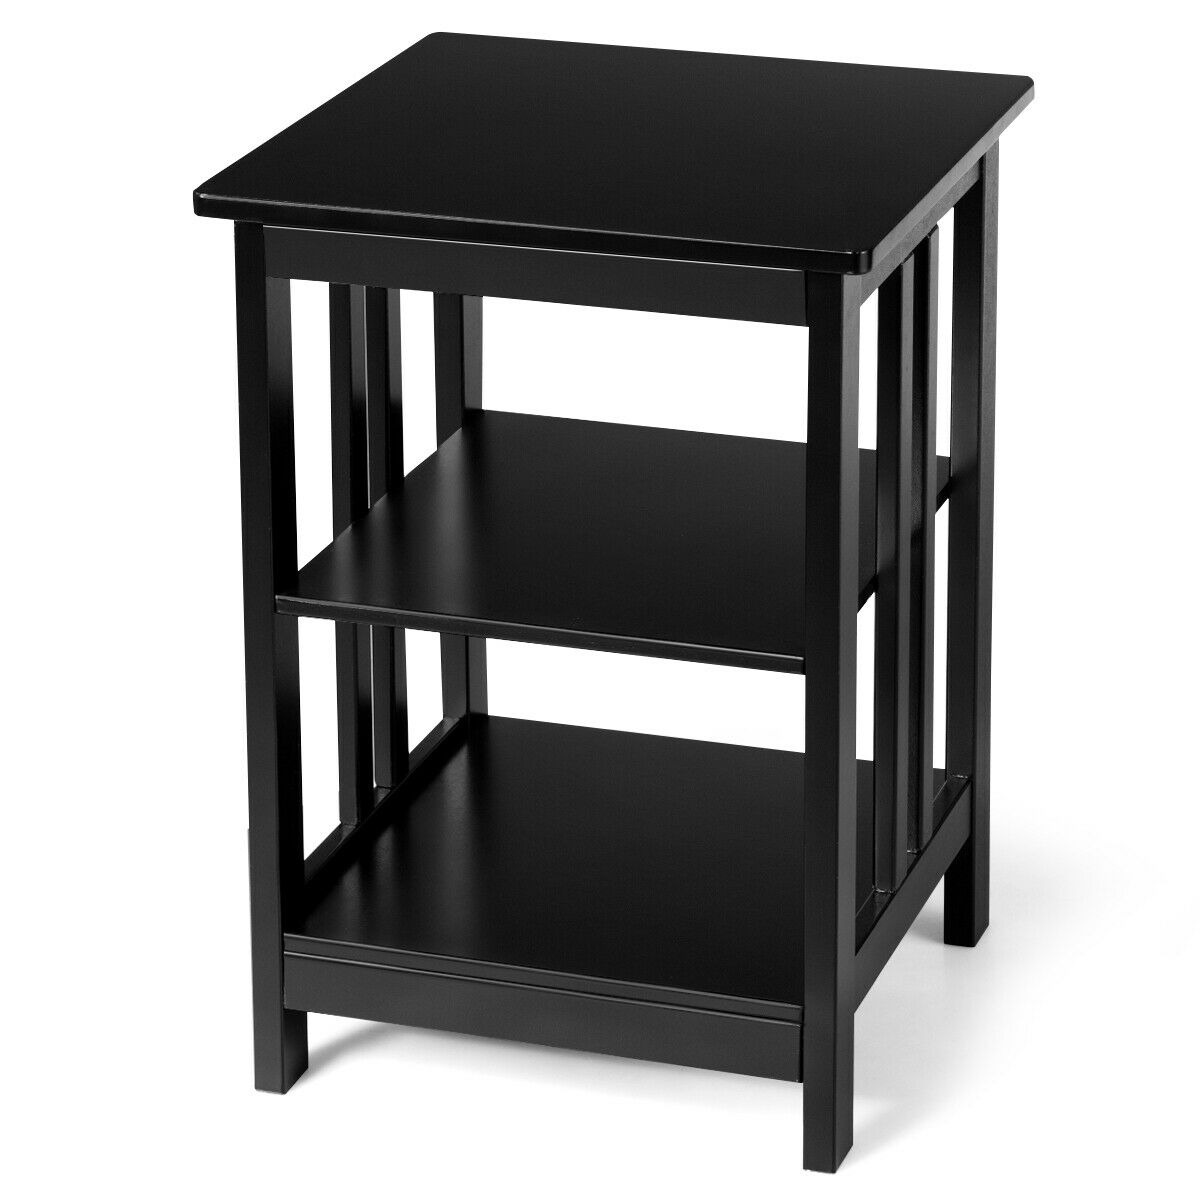 3 Tier Nightstand Side Table Wooden End Table W Baffles Round Corners Black